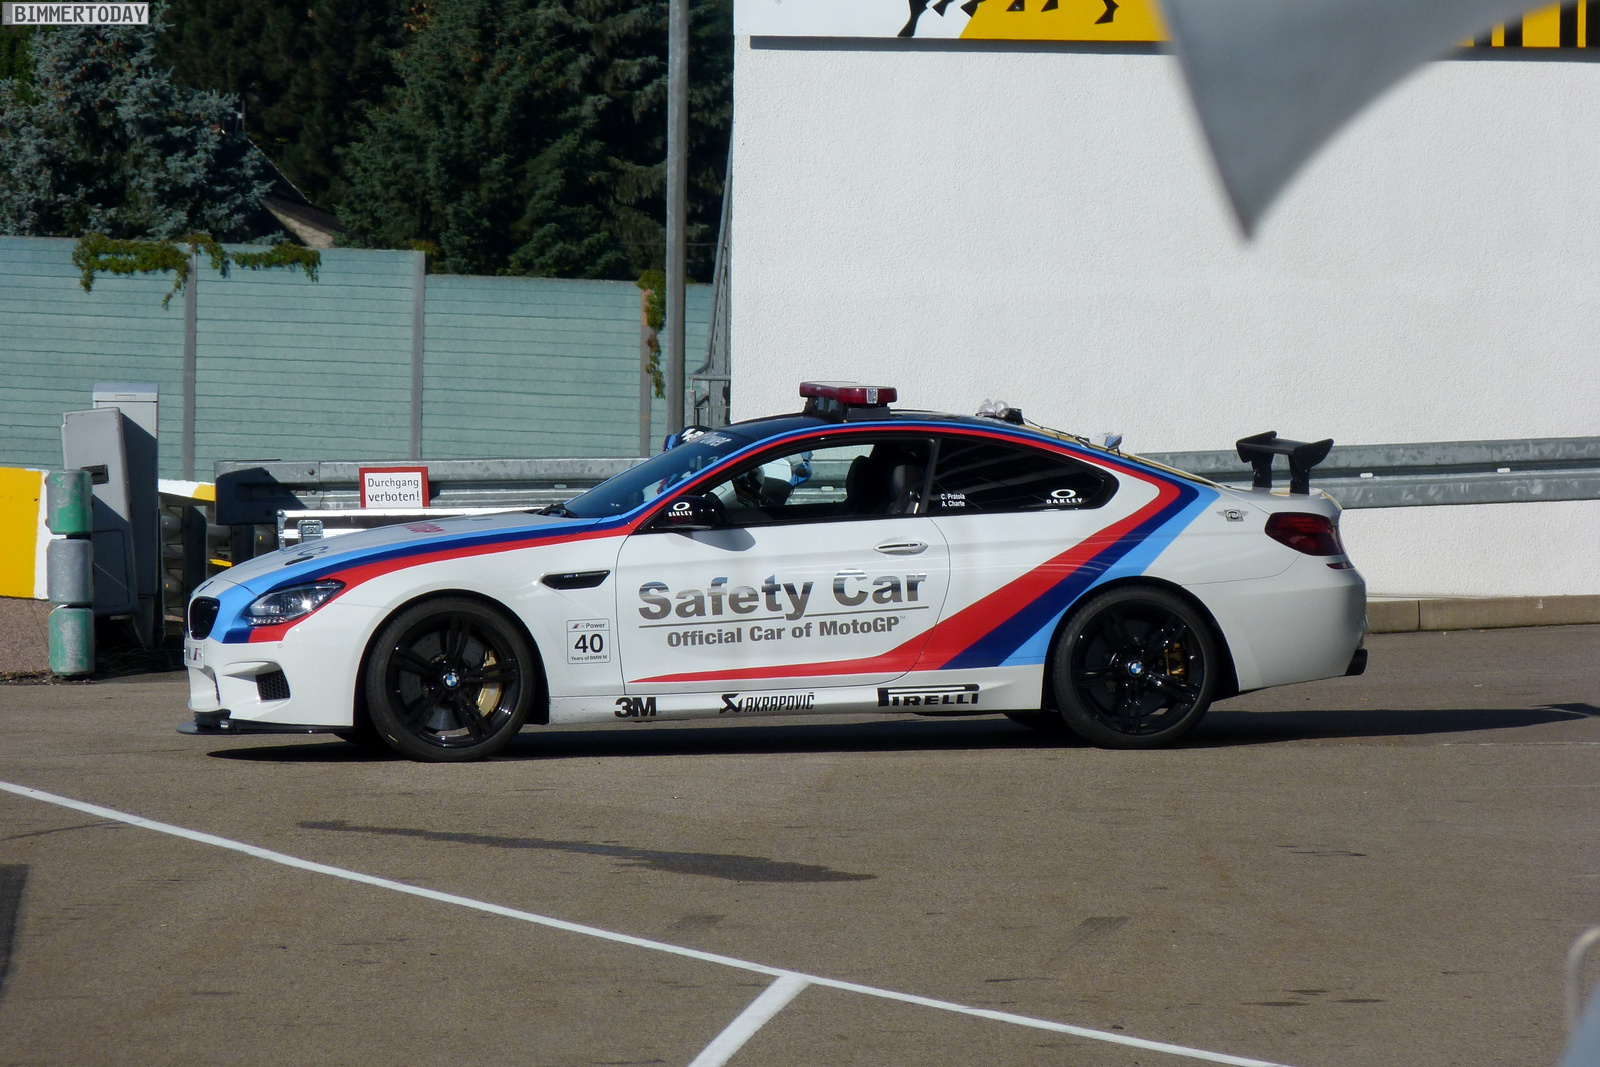 BMW M6 F13 MotoGP Safety Car 2012 Sachsenring 20